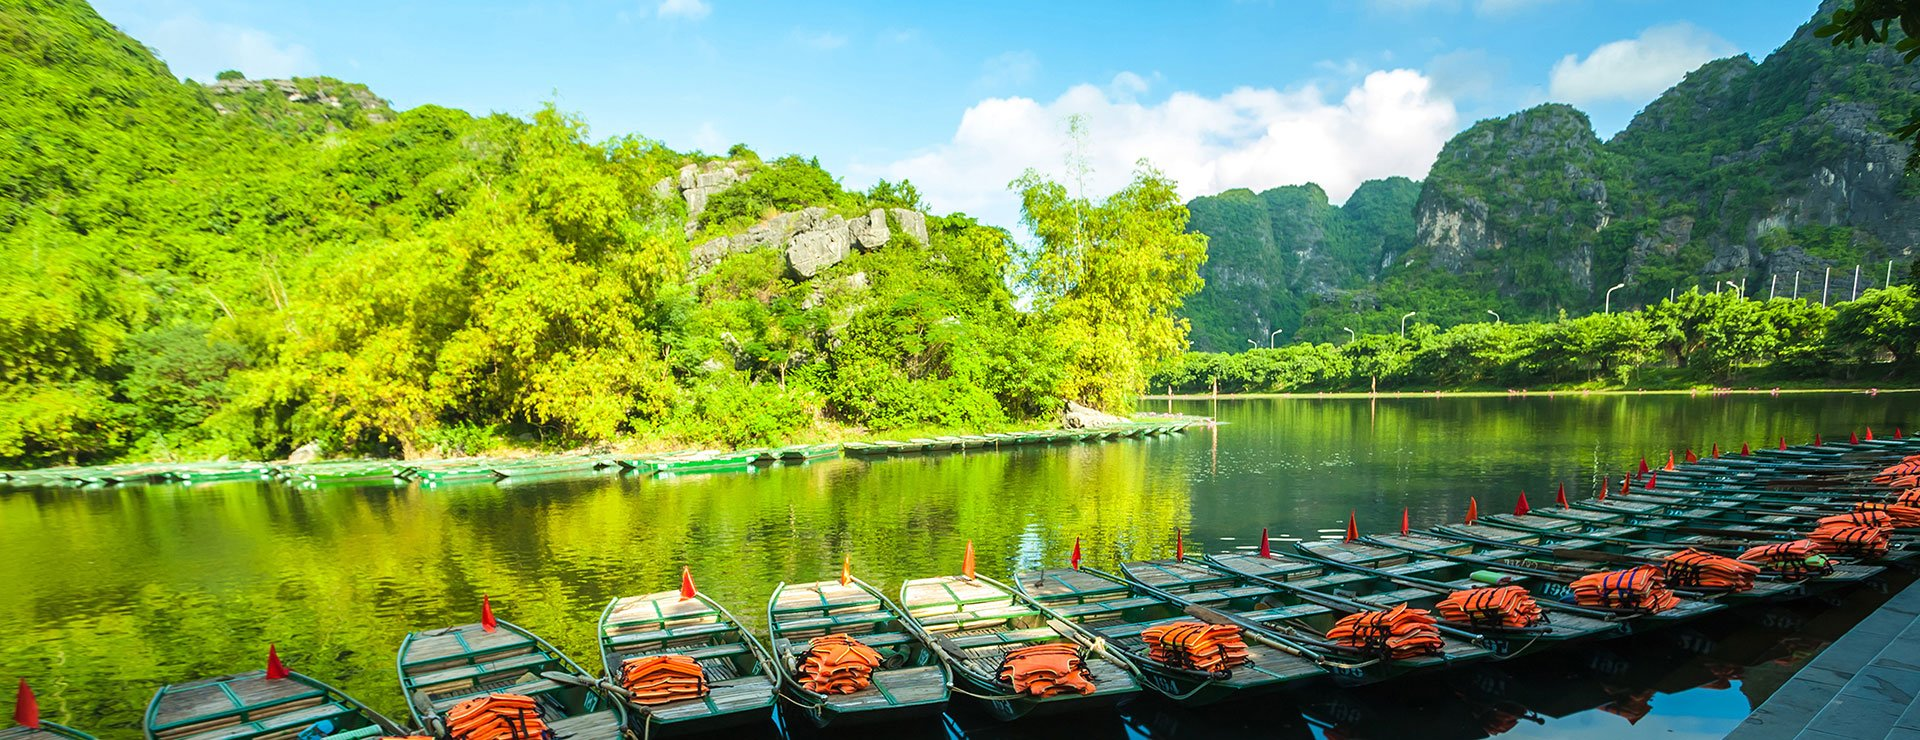 Wandering around Vietnam and Thailand to admire the coolest national parks